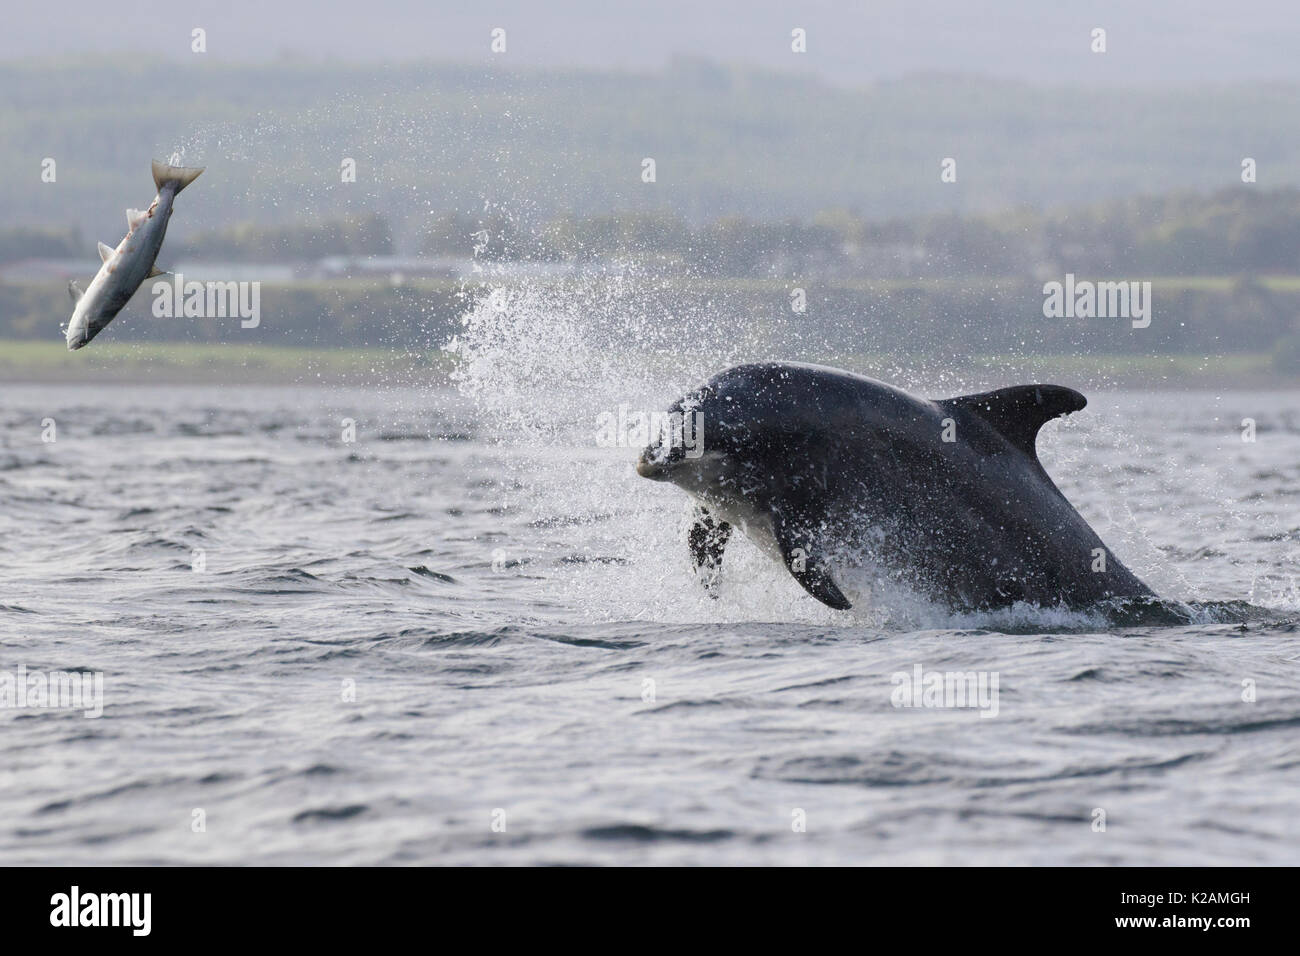 Bottlenose Dolphin (Tursiops truncatus) hunting salmon (Salmo salar) in the Moray Firth, Chanonry Point, Scotland, UK - Stock Image